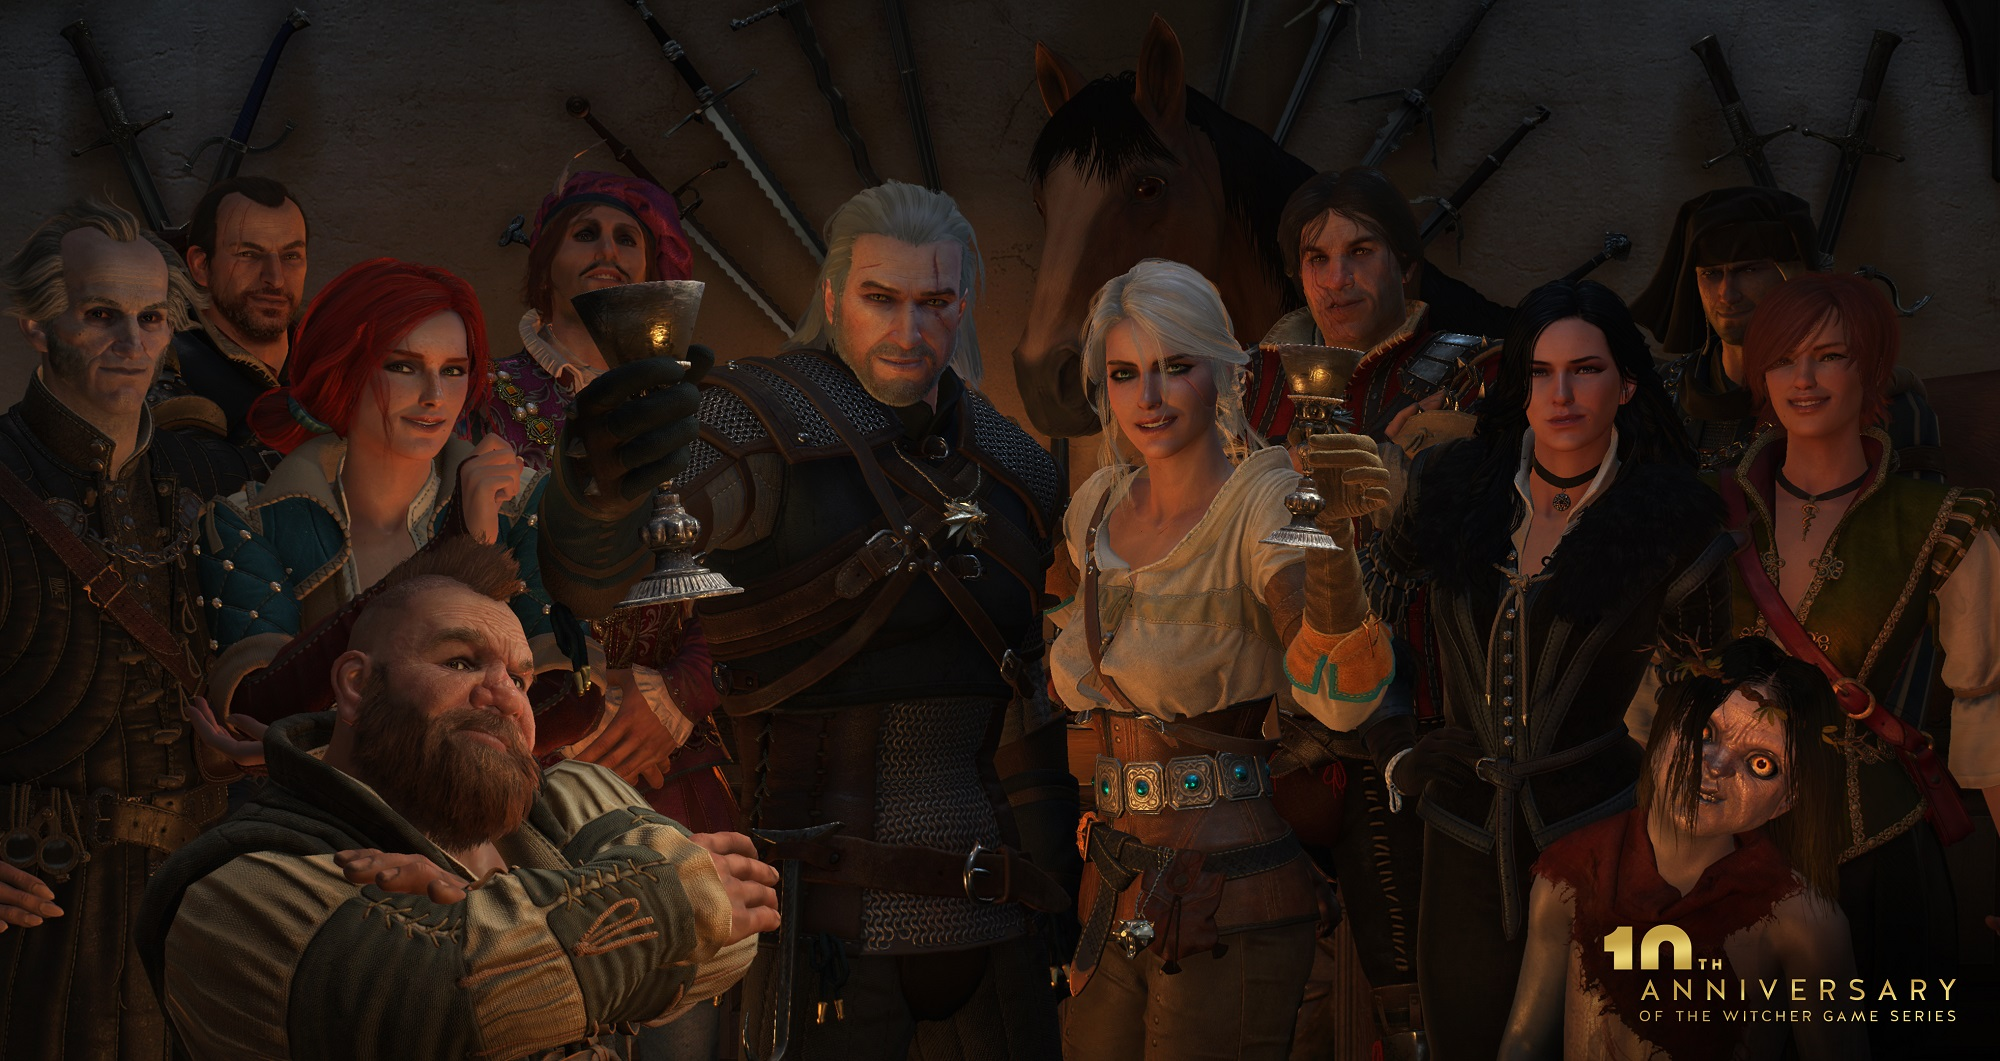 Konrad Tomaszkiewicz was director on The Witcher 3: Wild Hunt by CD Projekt Red